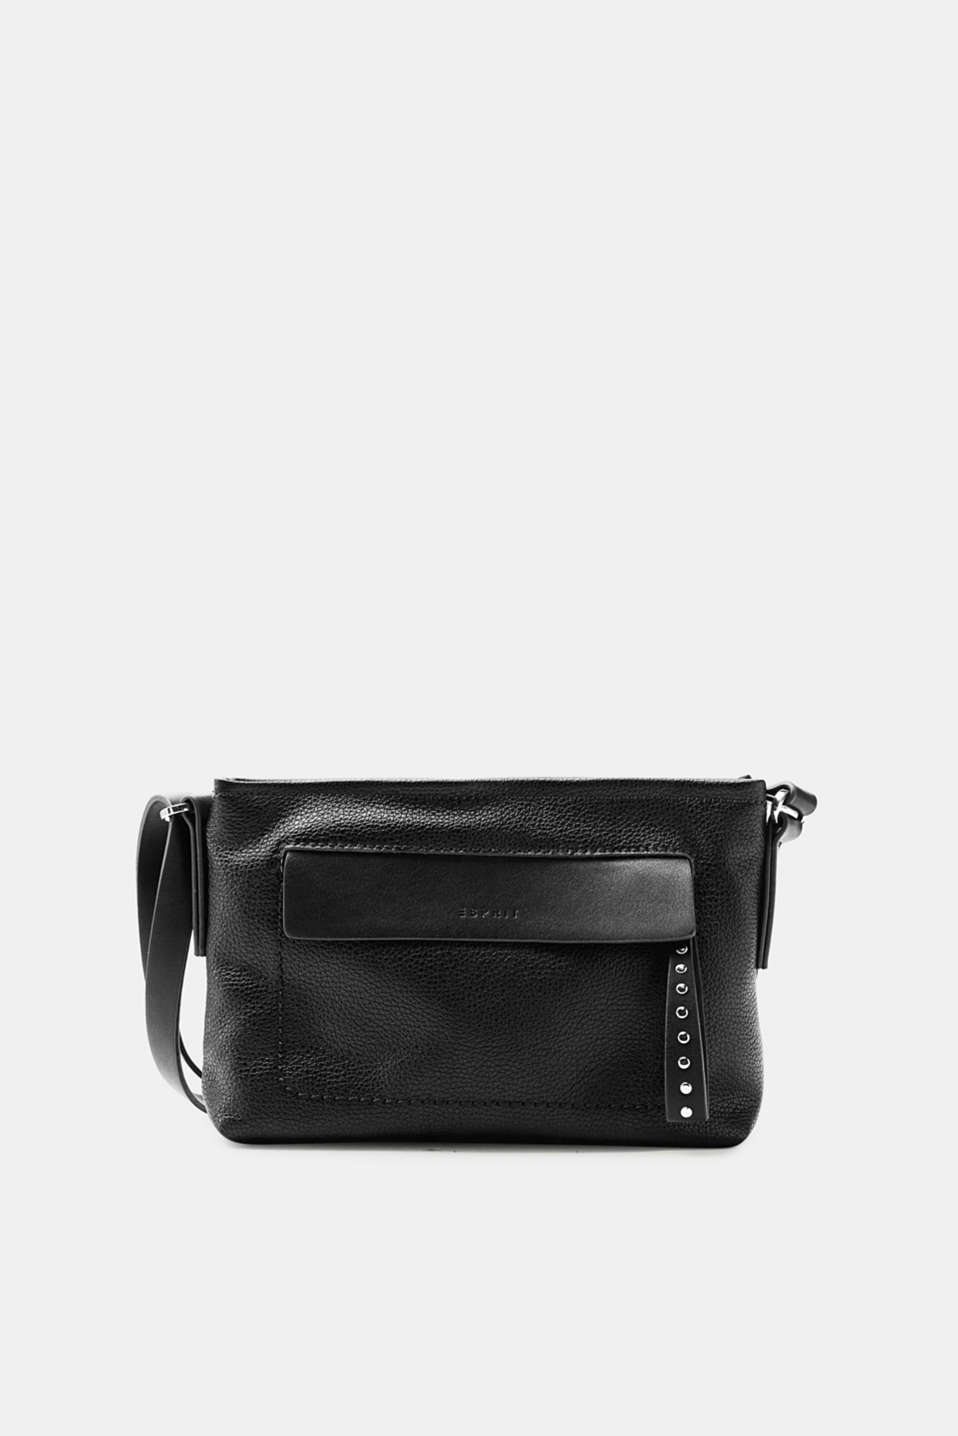 Esprit - Small shoulder bag with stud details